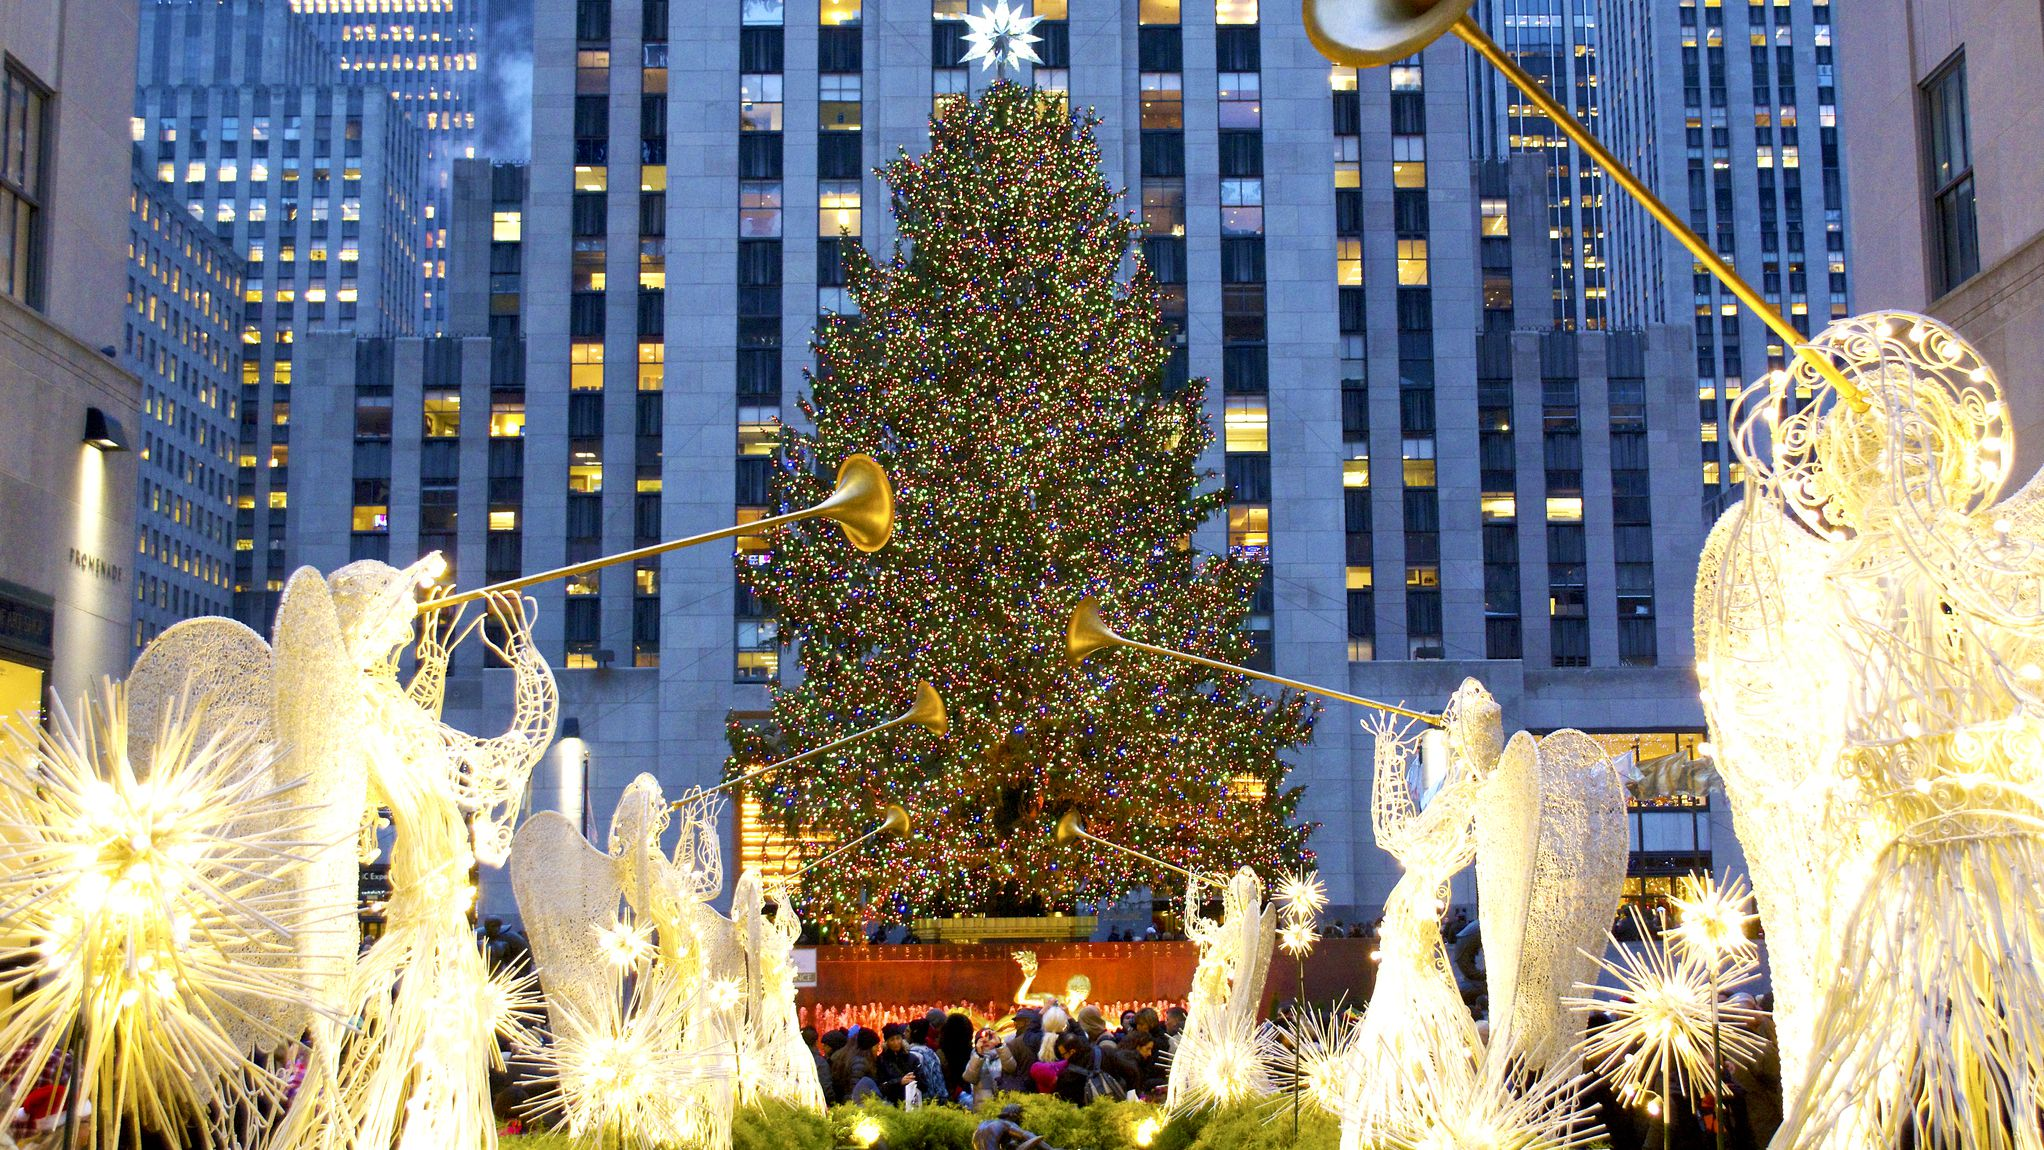 Nyc Christmas.Guide To Christmas In New York City Events Parades And Lights